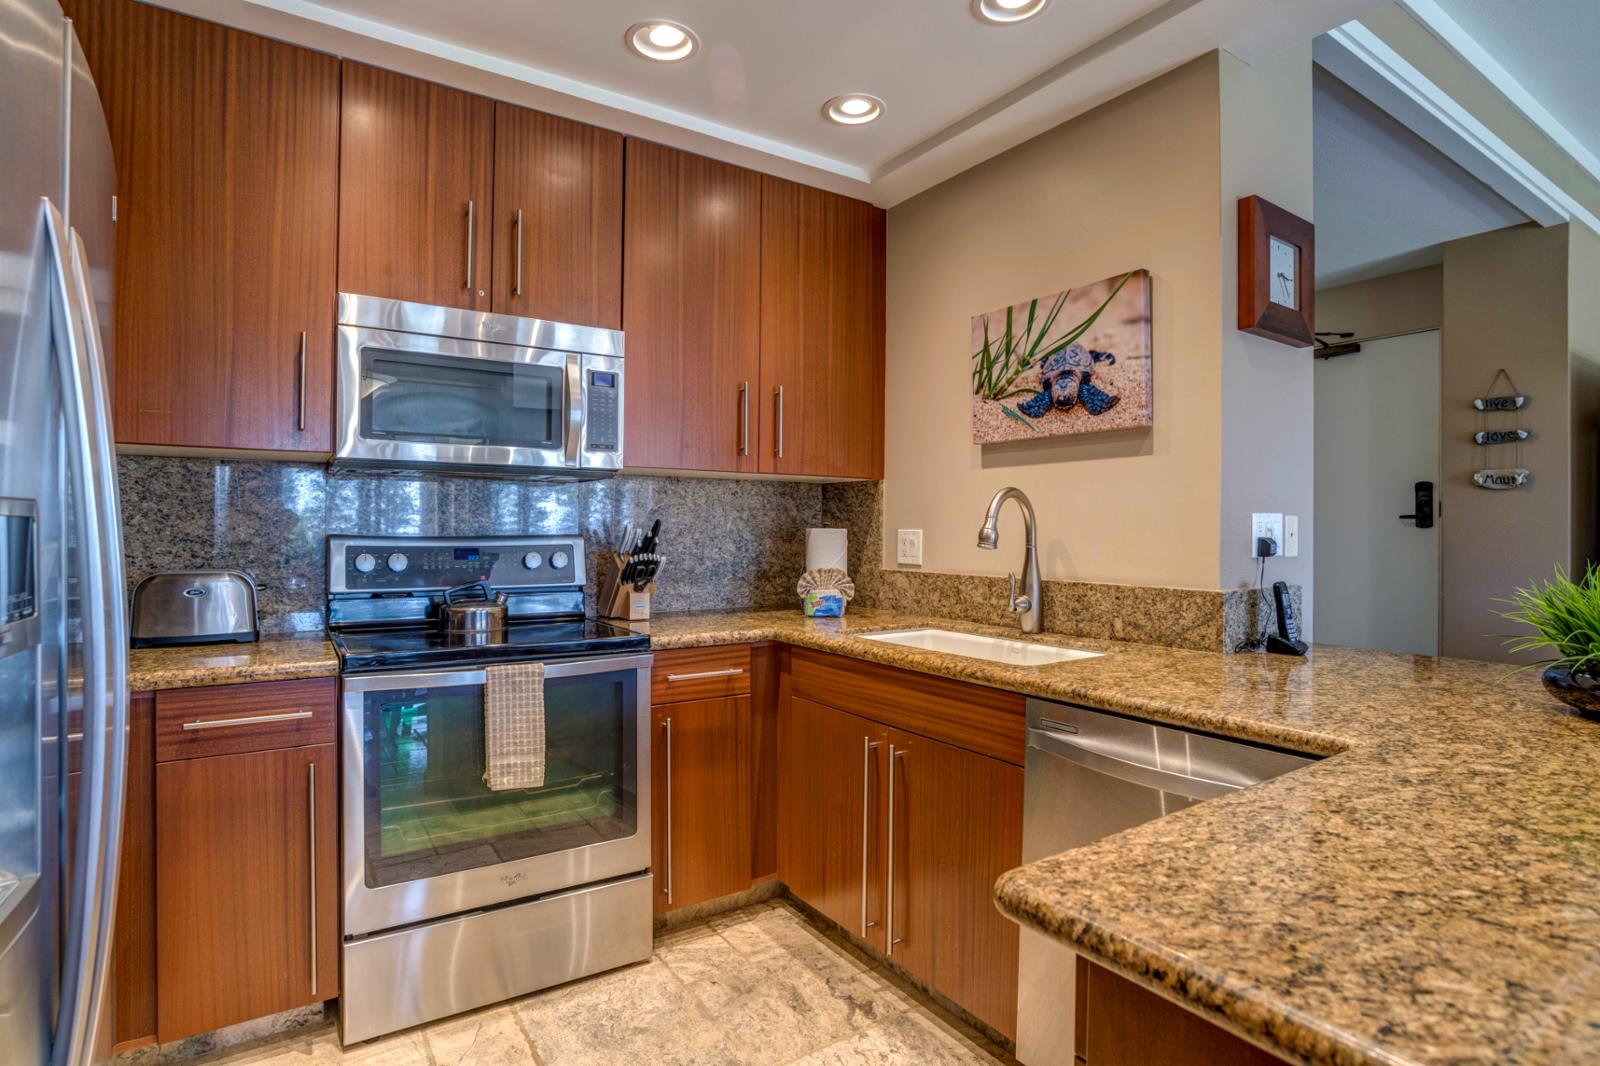 Stainless steel appliances throughout and amazing upgrades!